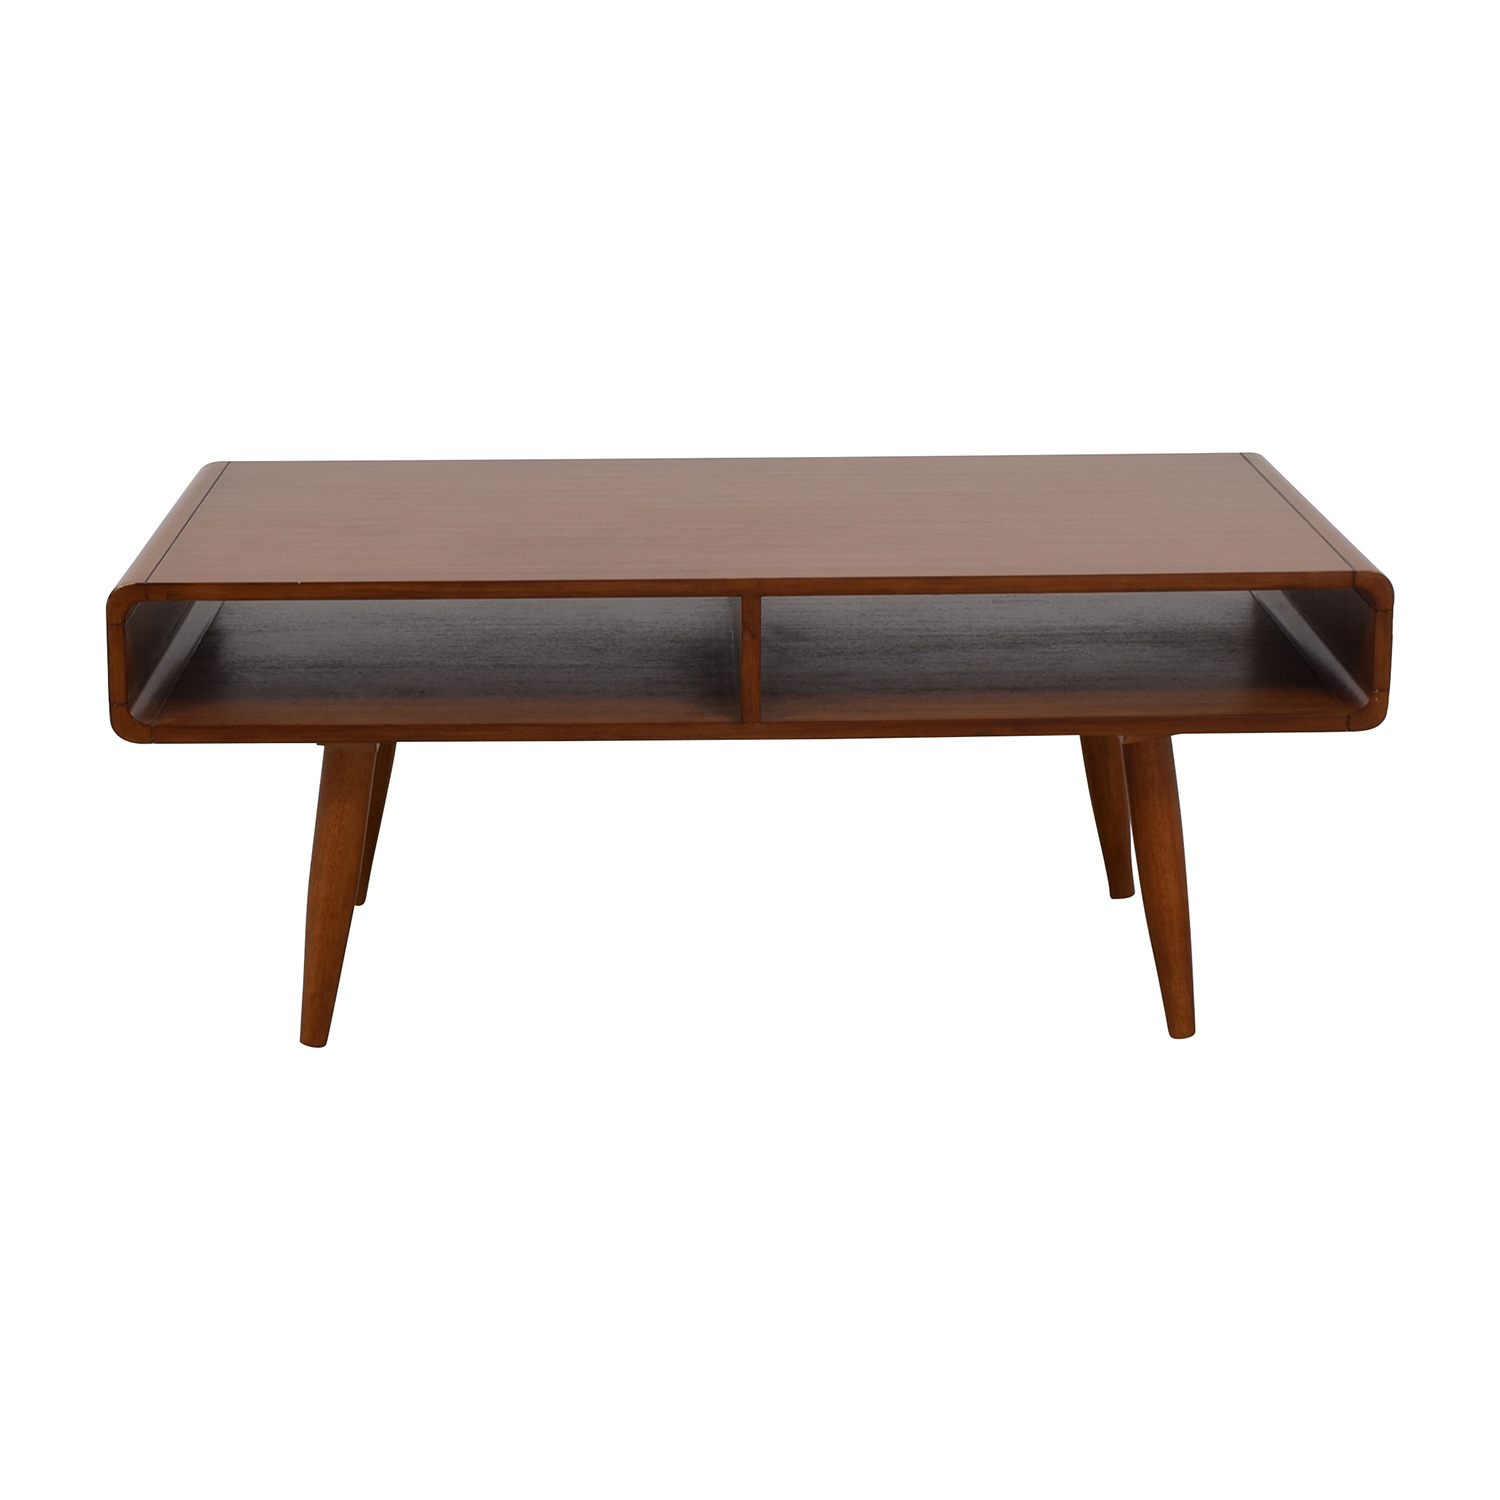 shop Borraam Boraam Zebra Series Halmstad Coffee Table online